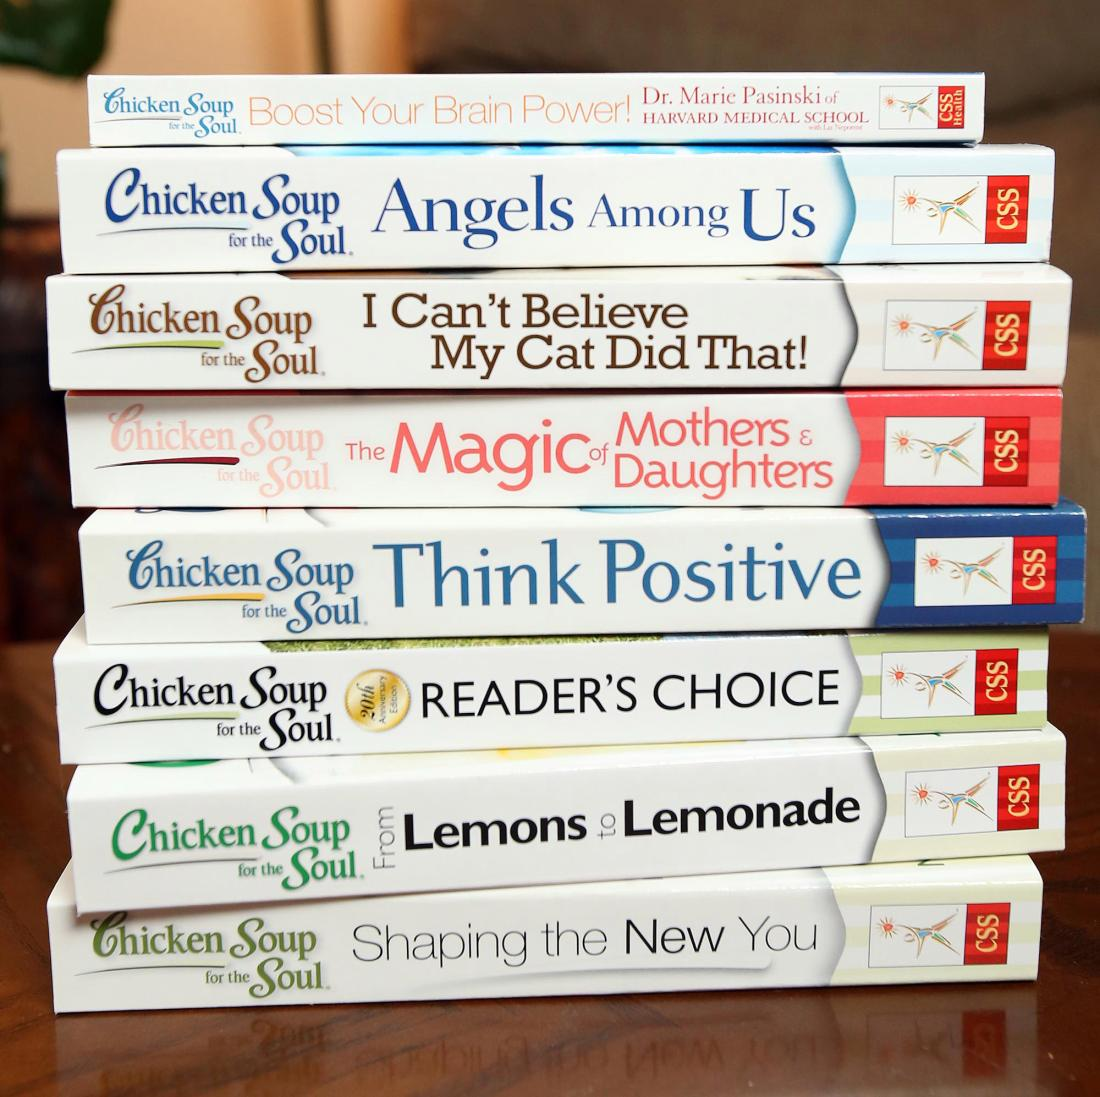 Online Chicken Soups Books  Books Reviews Chicken Soups Books Online